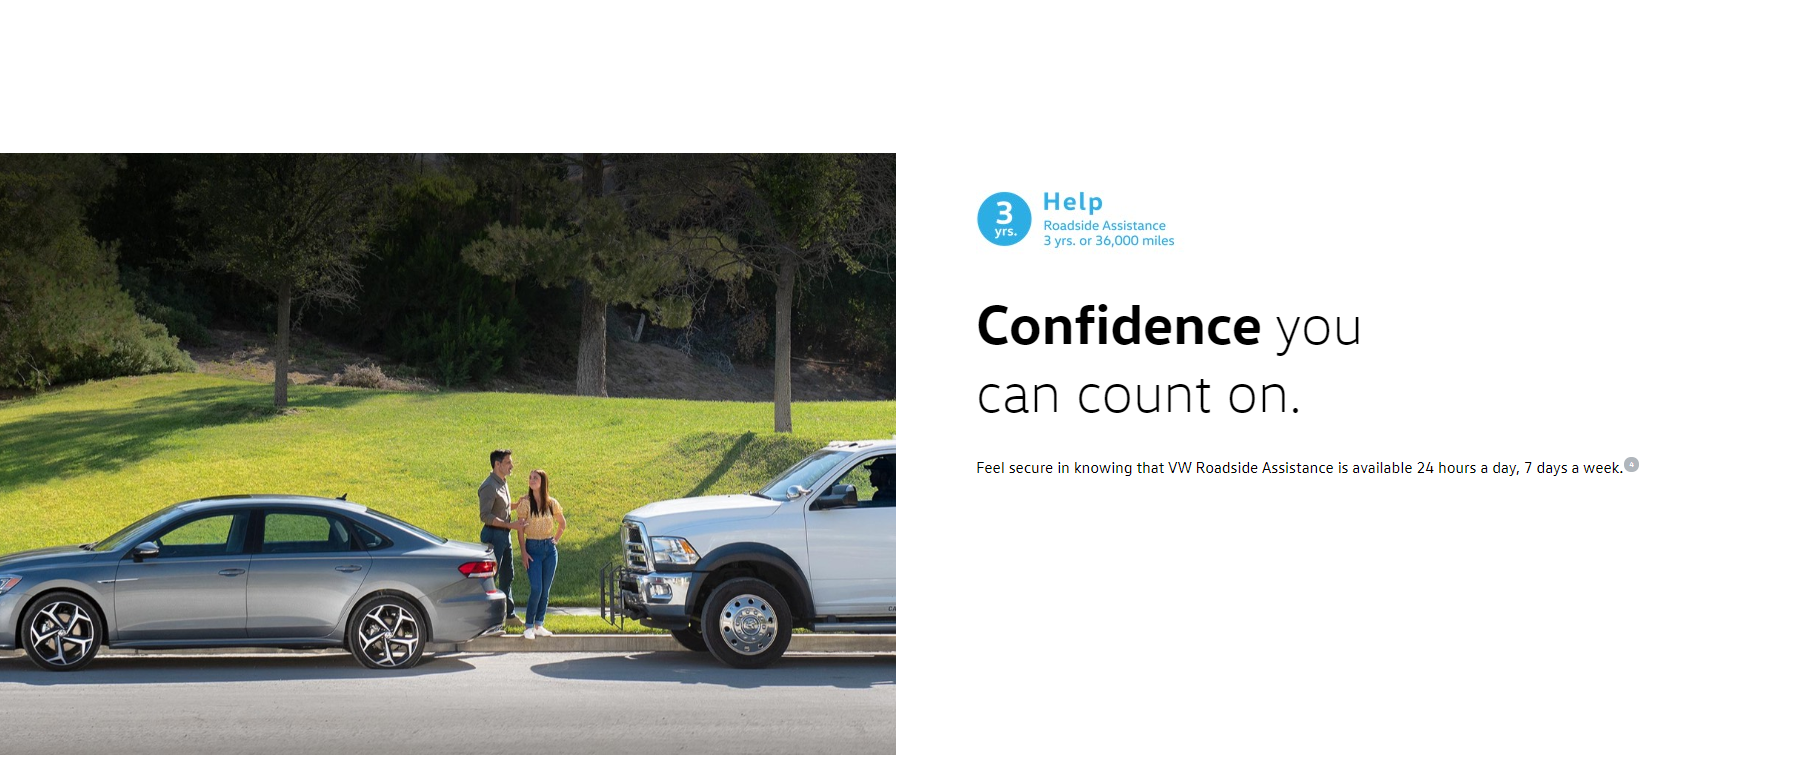 Confidence you can count on. Feel secure in knowing that VW Roadside Assistance is available 24 hours a day, 7 days a week.